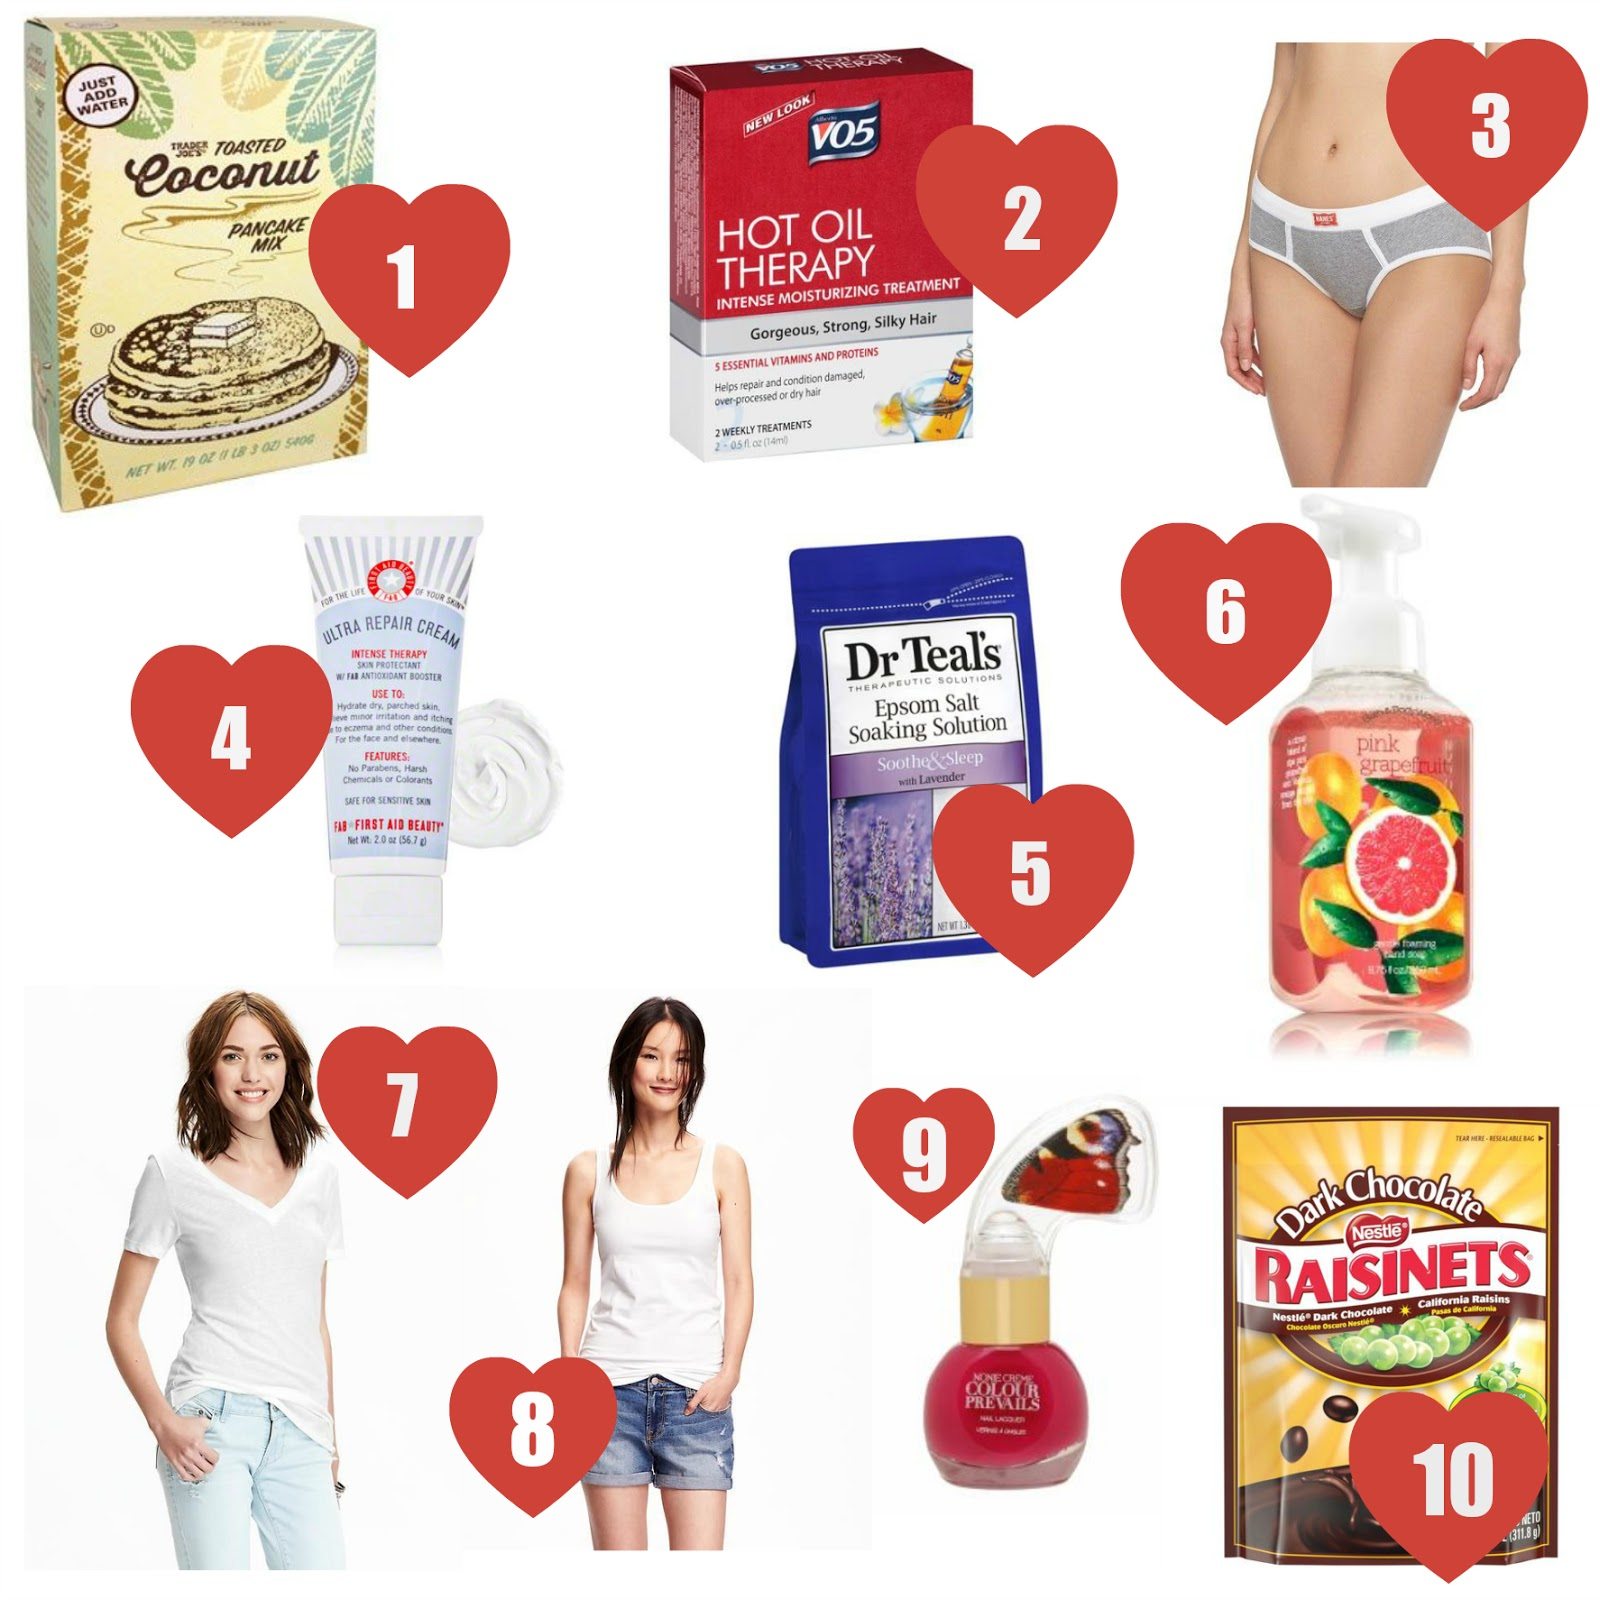 10 under $10 for Valentine's Day | all dressed up with nothing to drink...